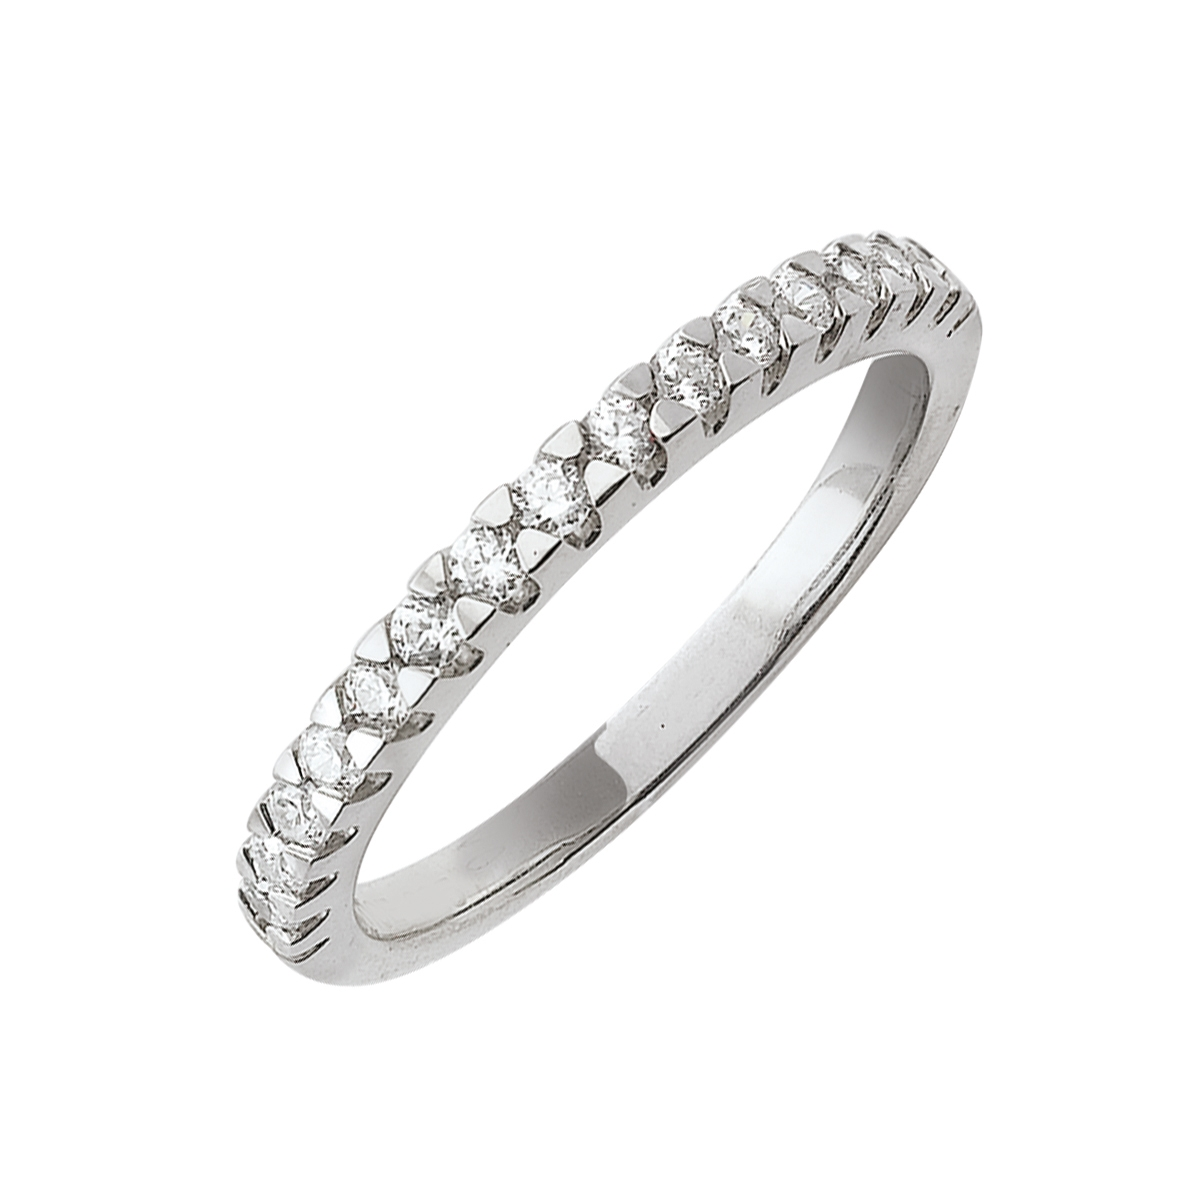 Alliance demi-tour serti griffes or blanc - Diamants synthétiques 0,35 carat